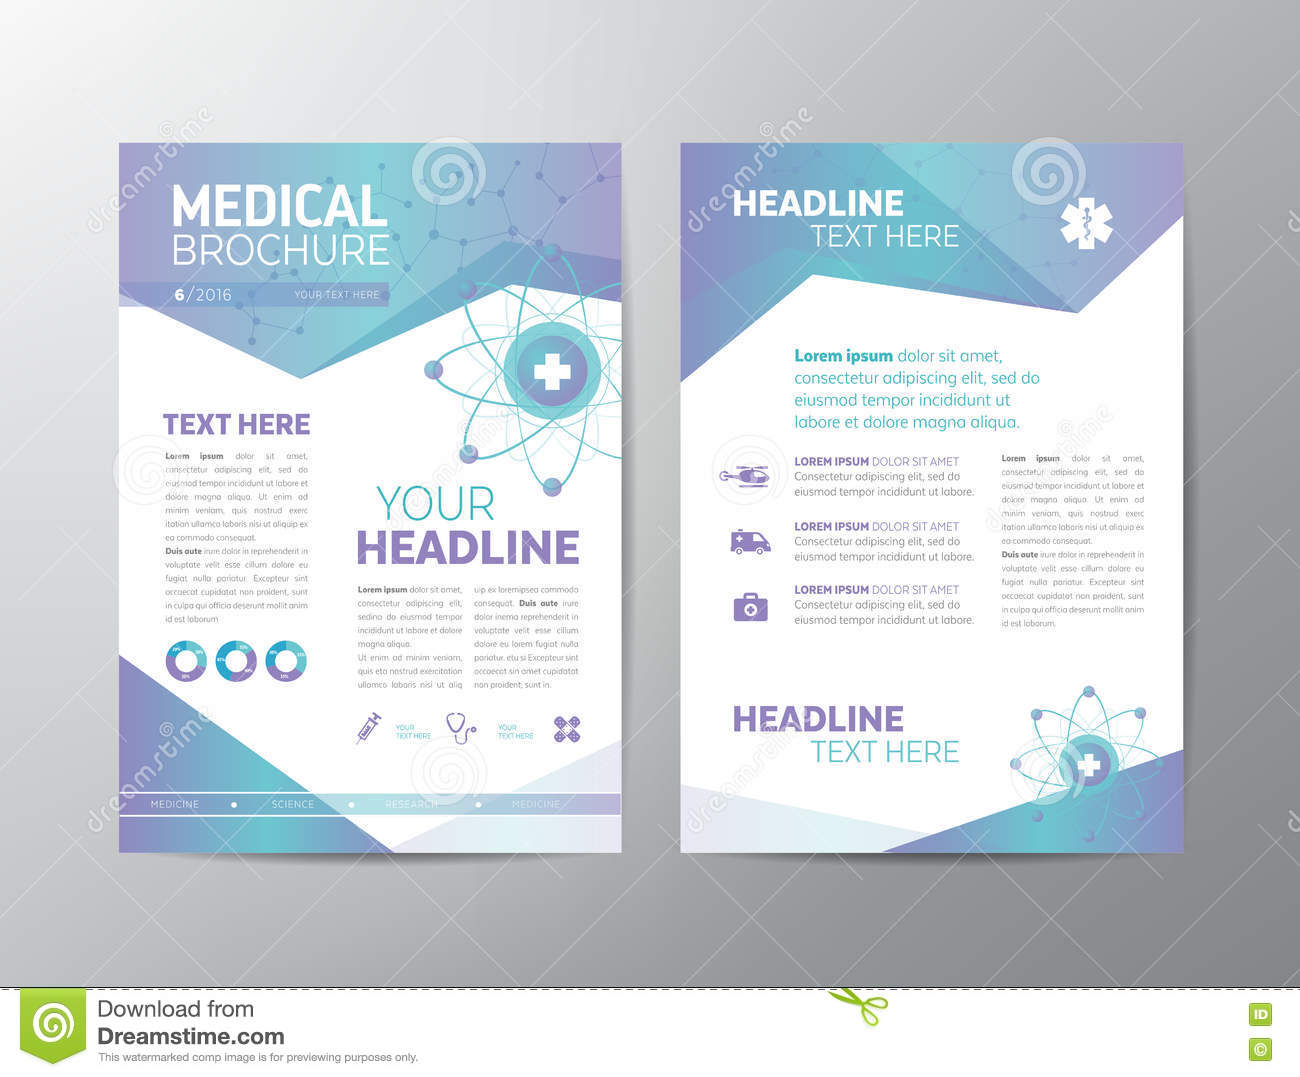 medical brochures templates - medical brochure leaflet stock vector illustration of